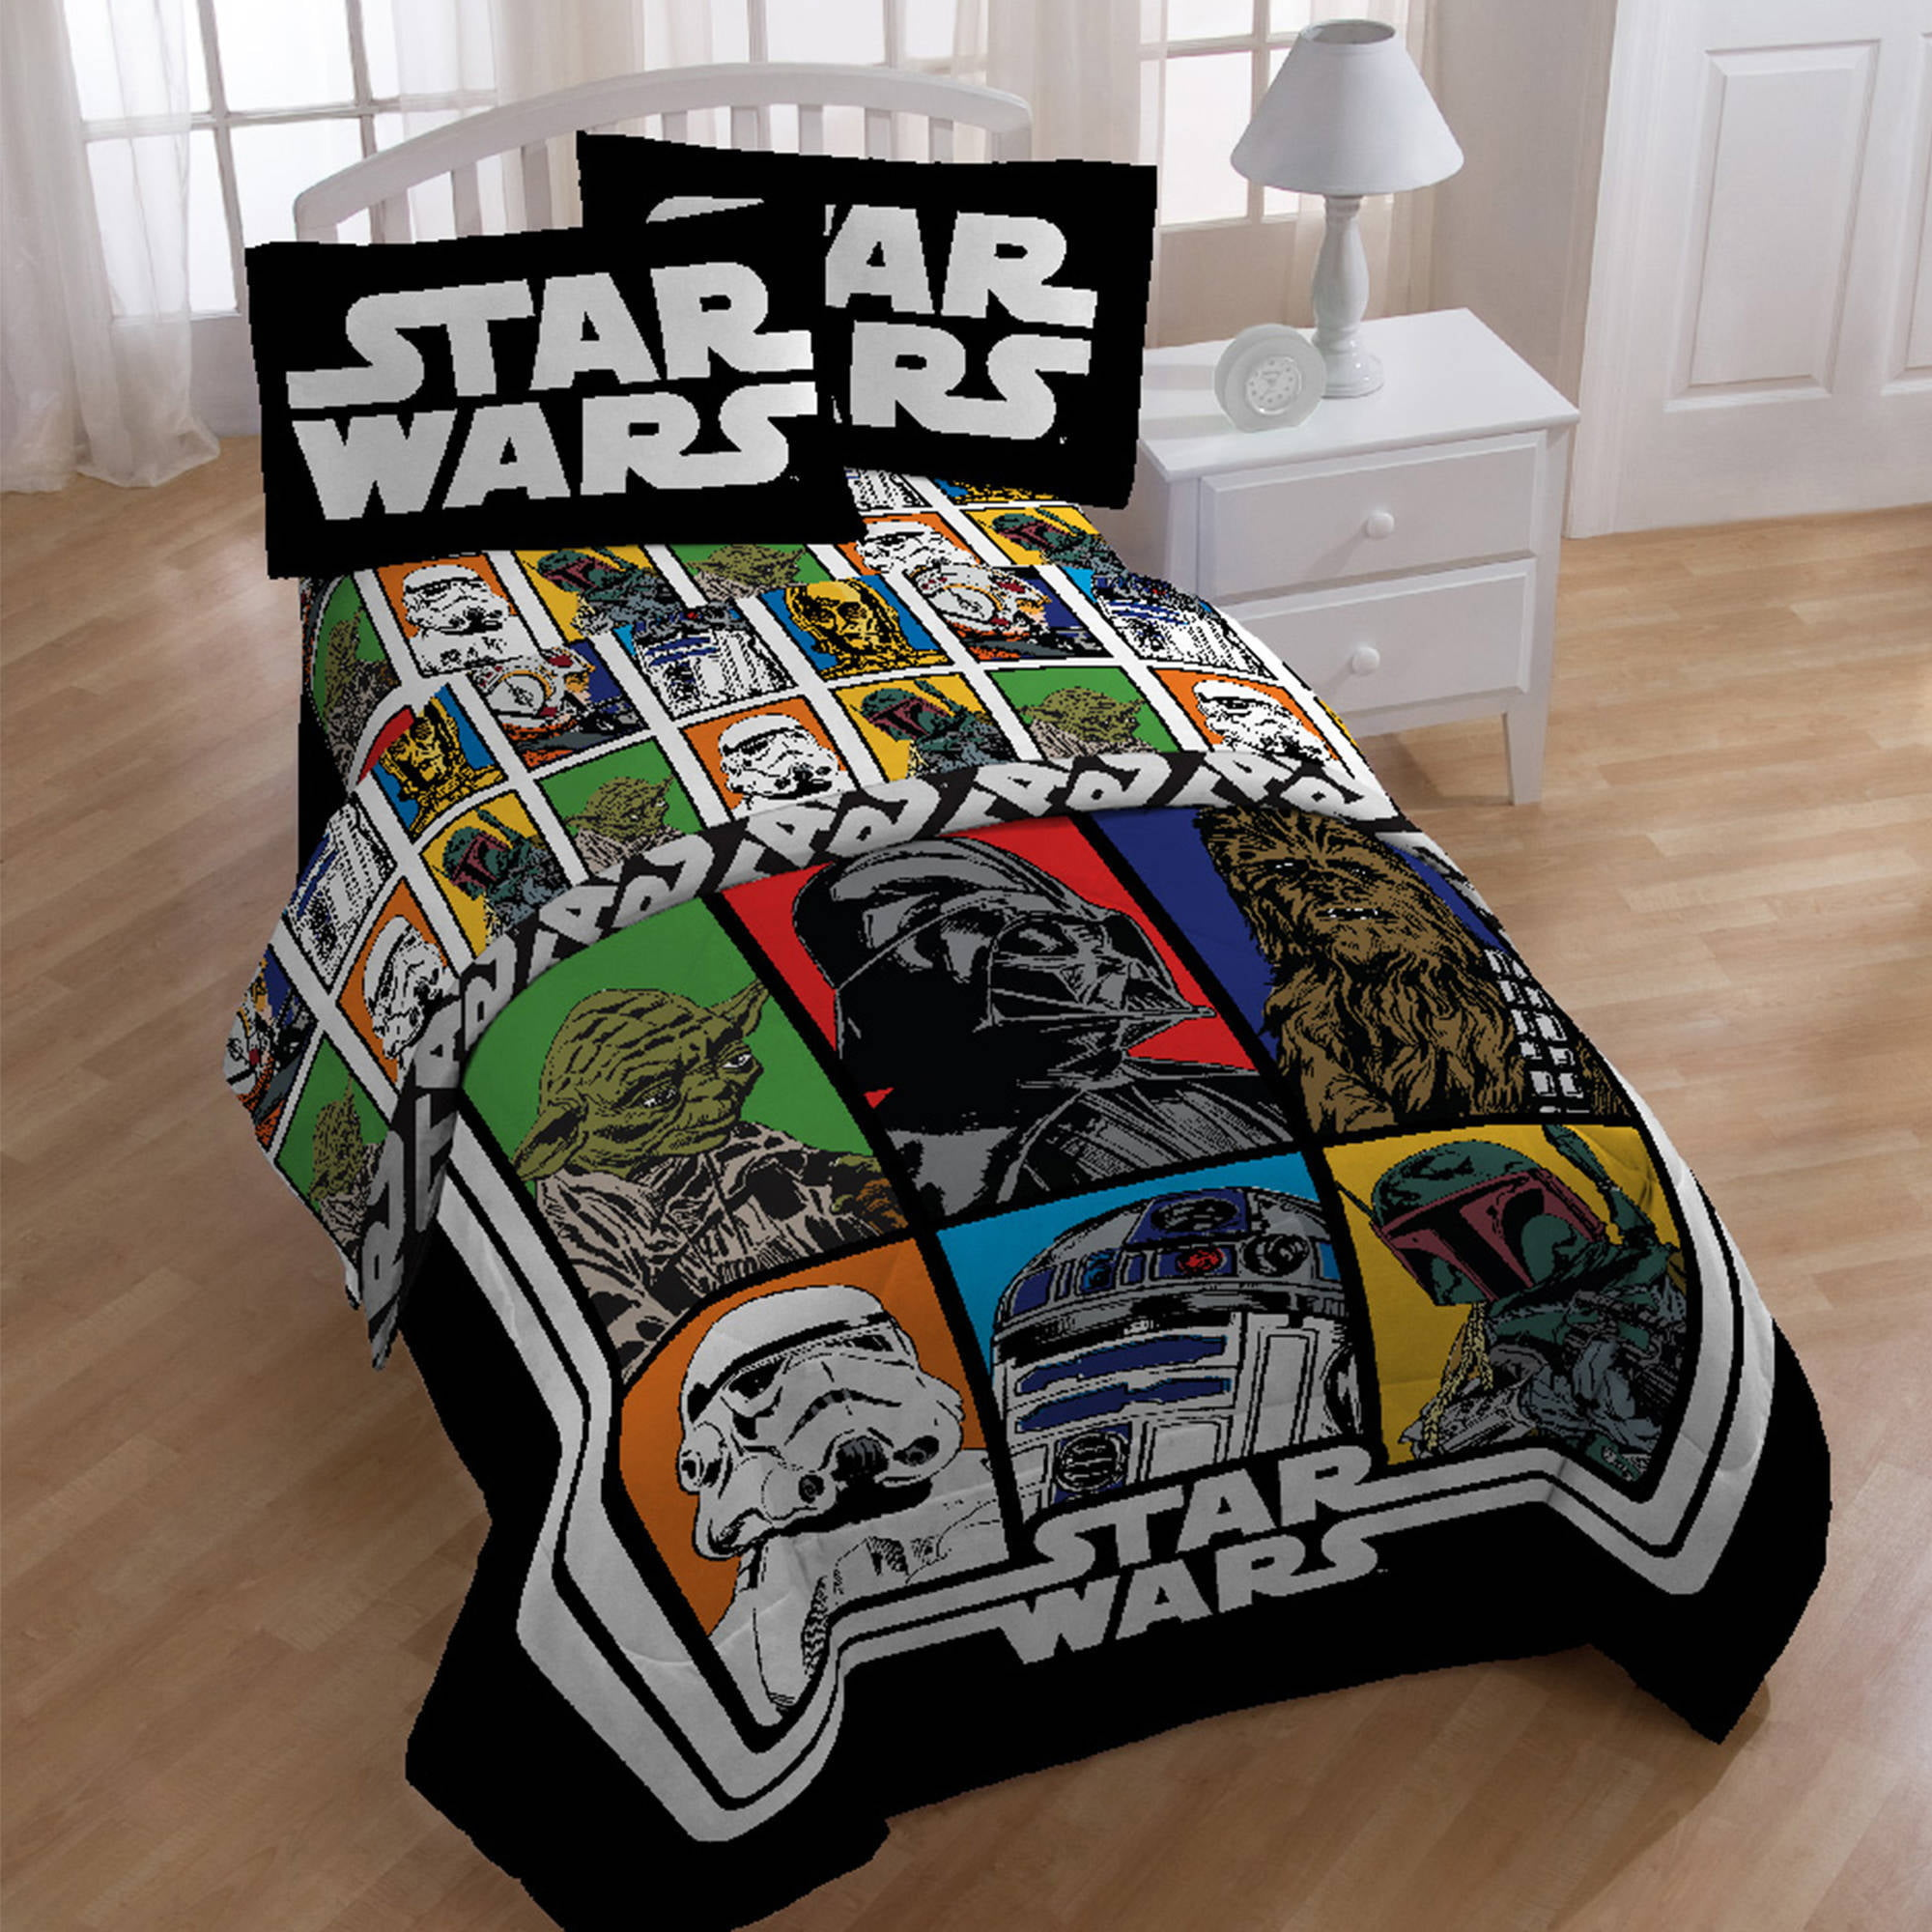 of full bedroom tags decor size doors wars cool for star bedrooms tag set rug nursery ideas rugs wall stickers diy